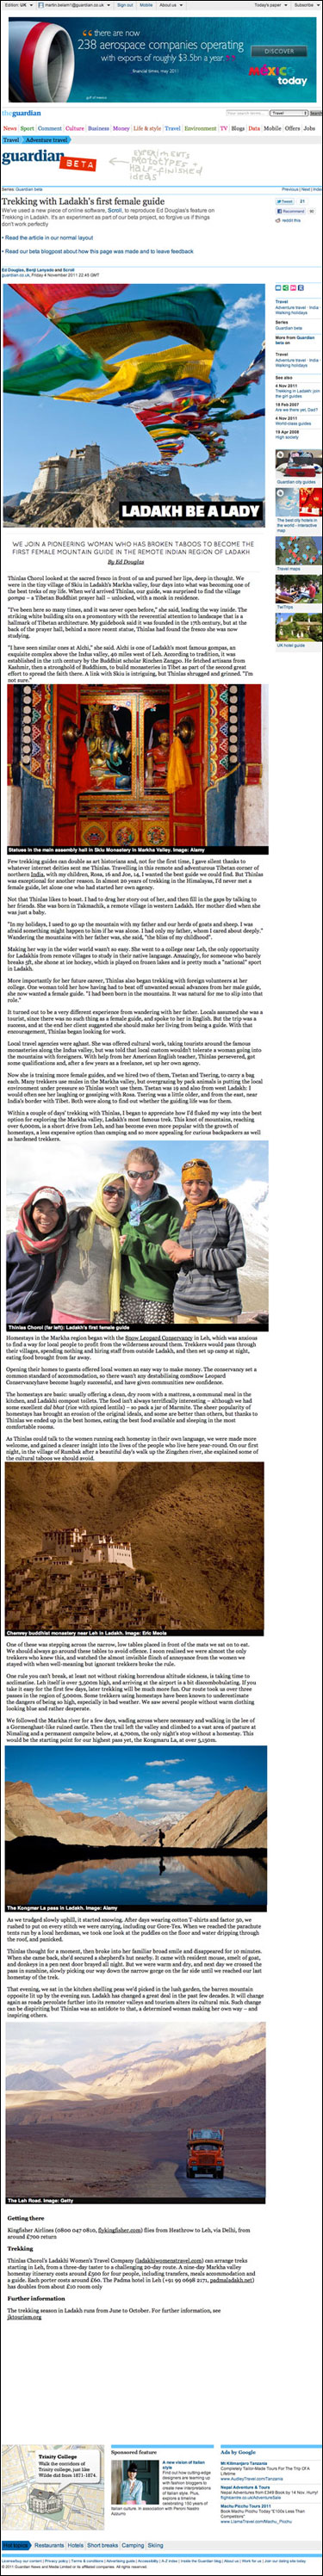 Ladakh article published using Scoll